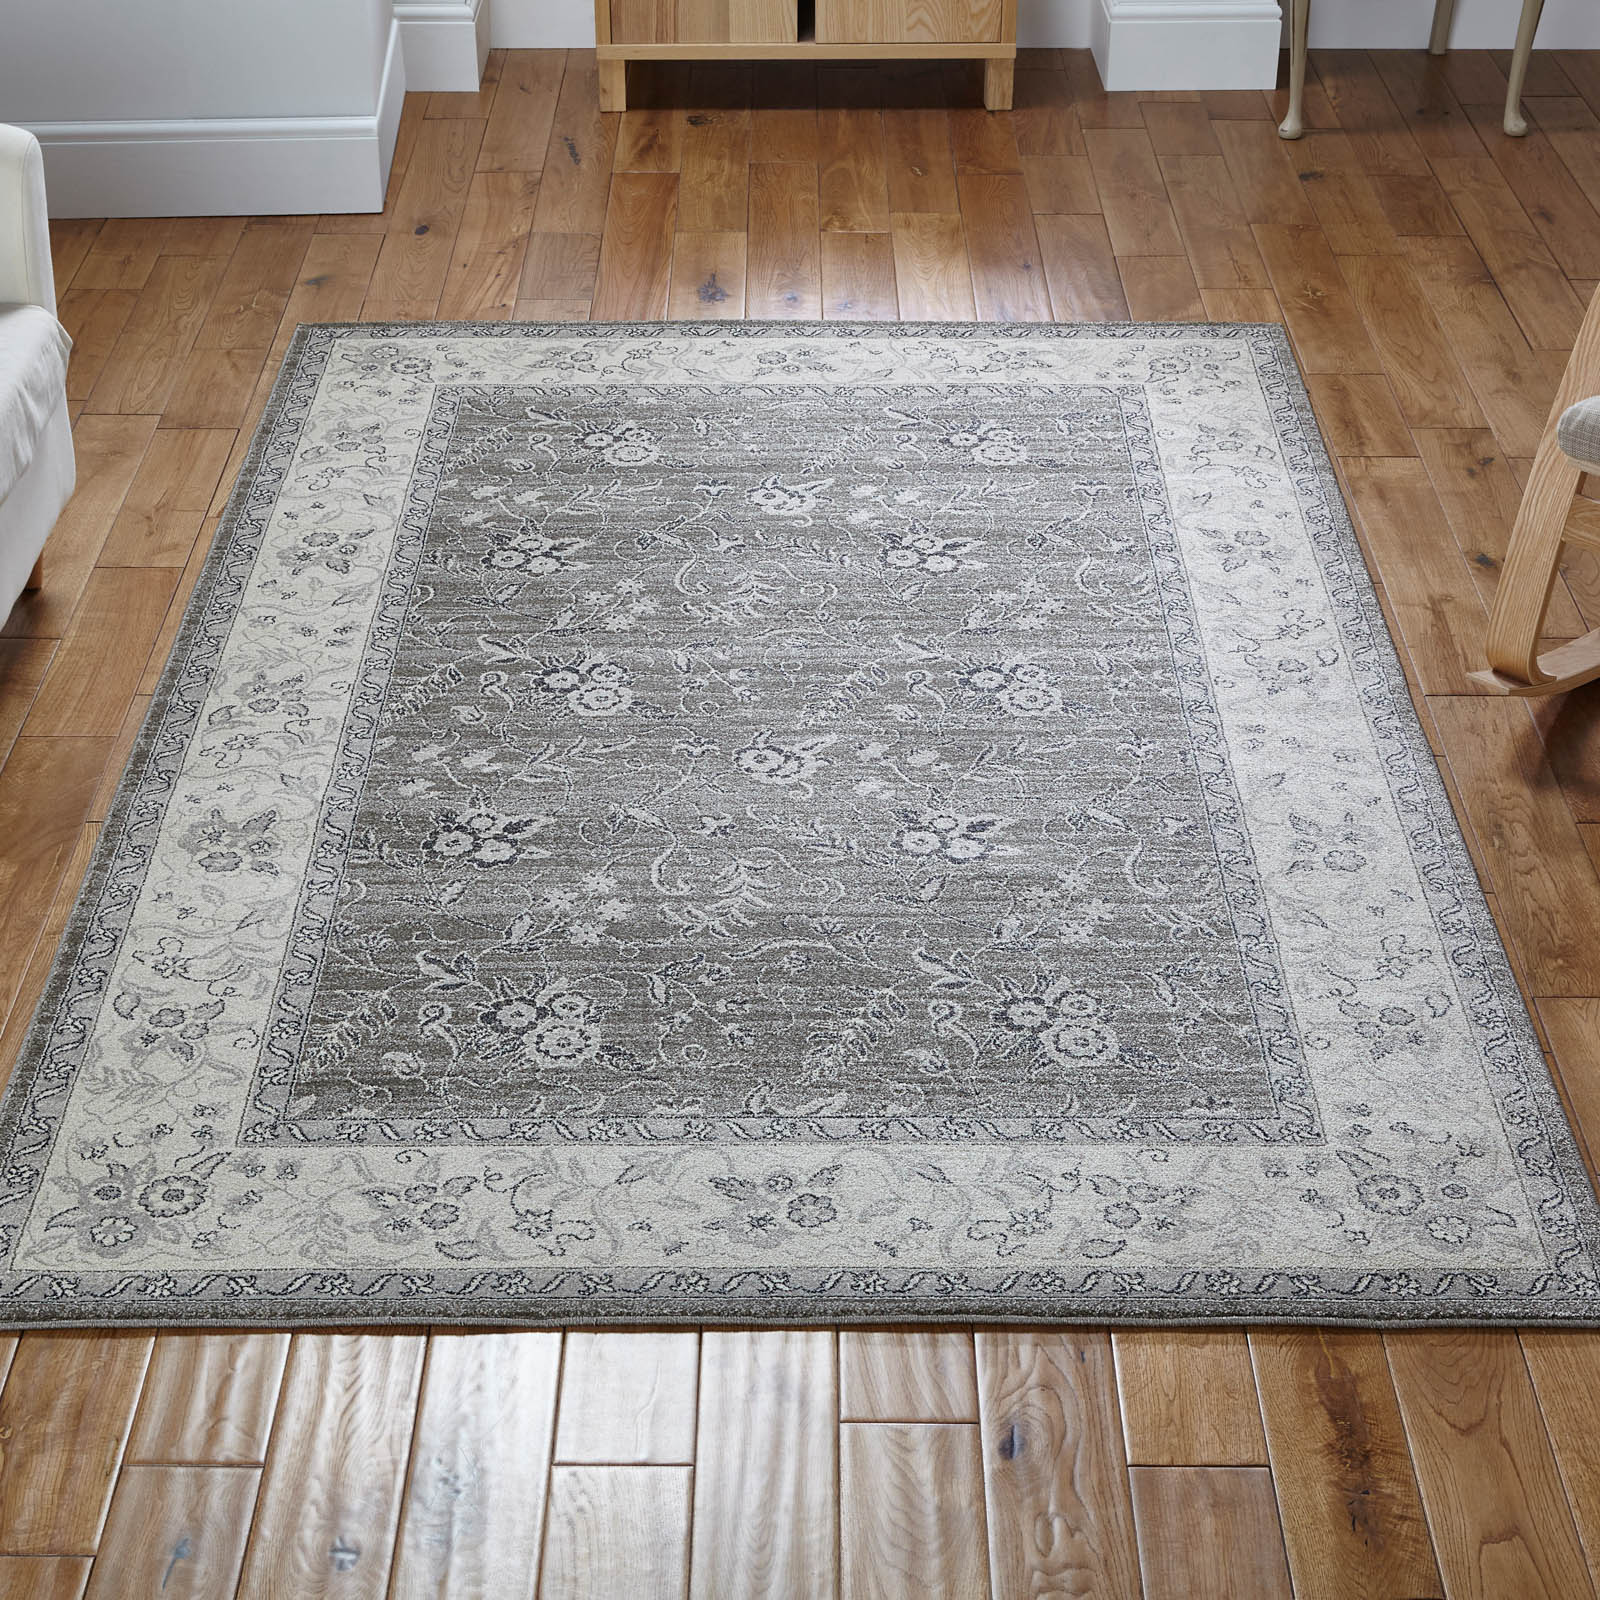 Richmond Rug 601Q in Grey and Beige